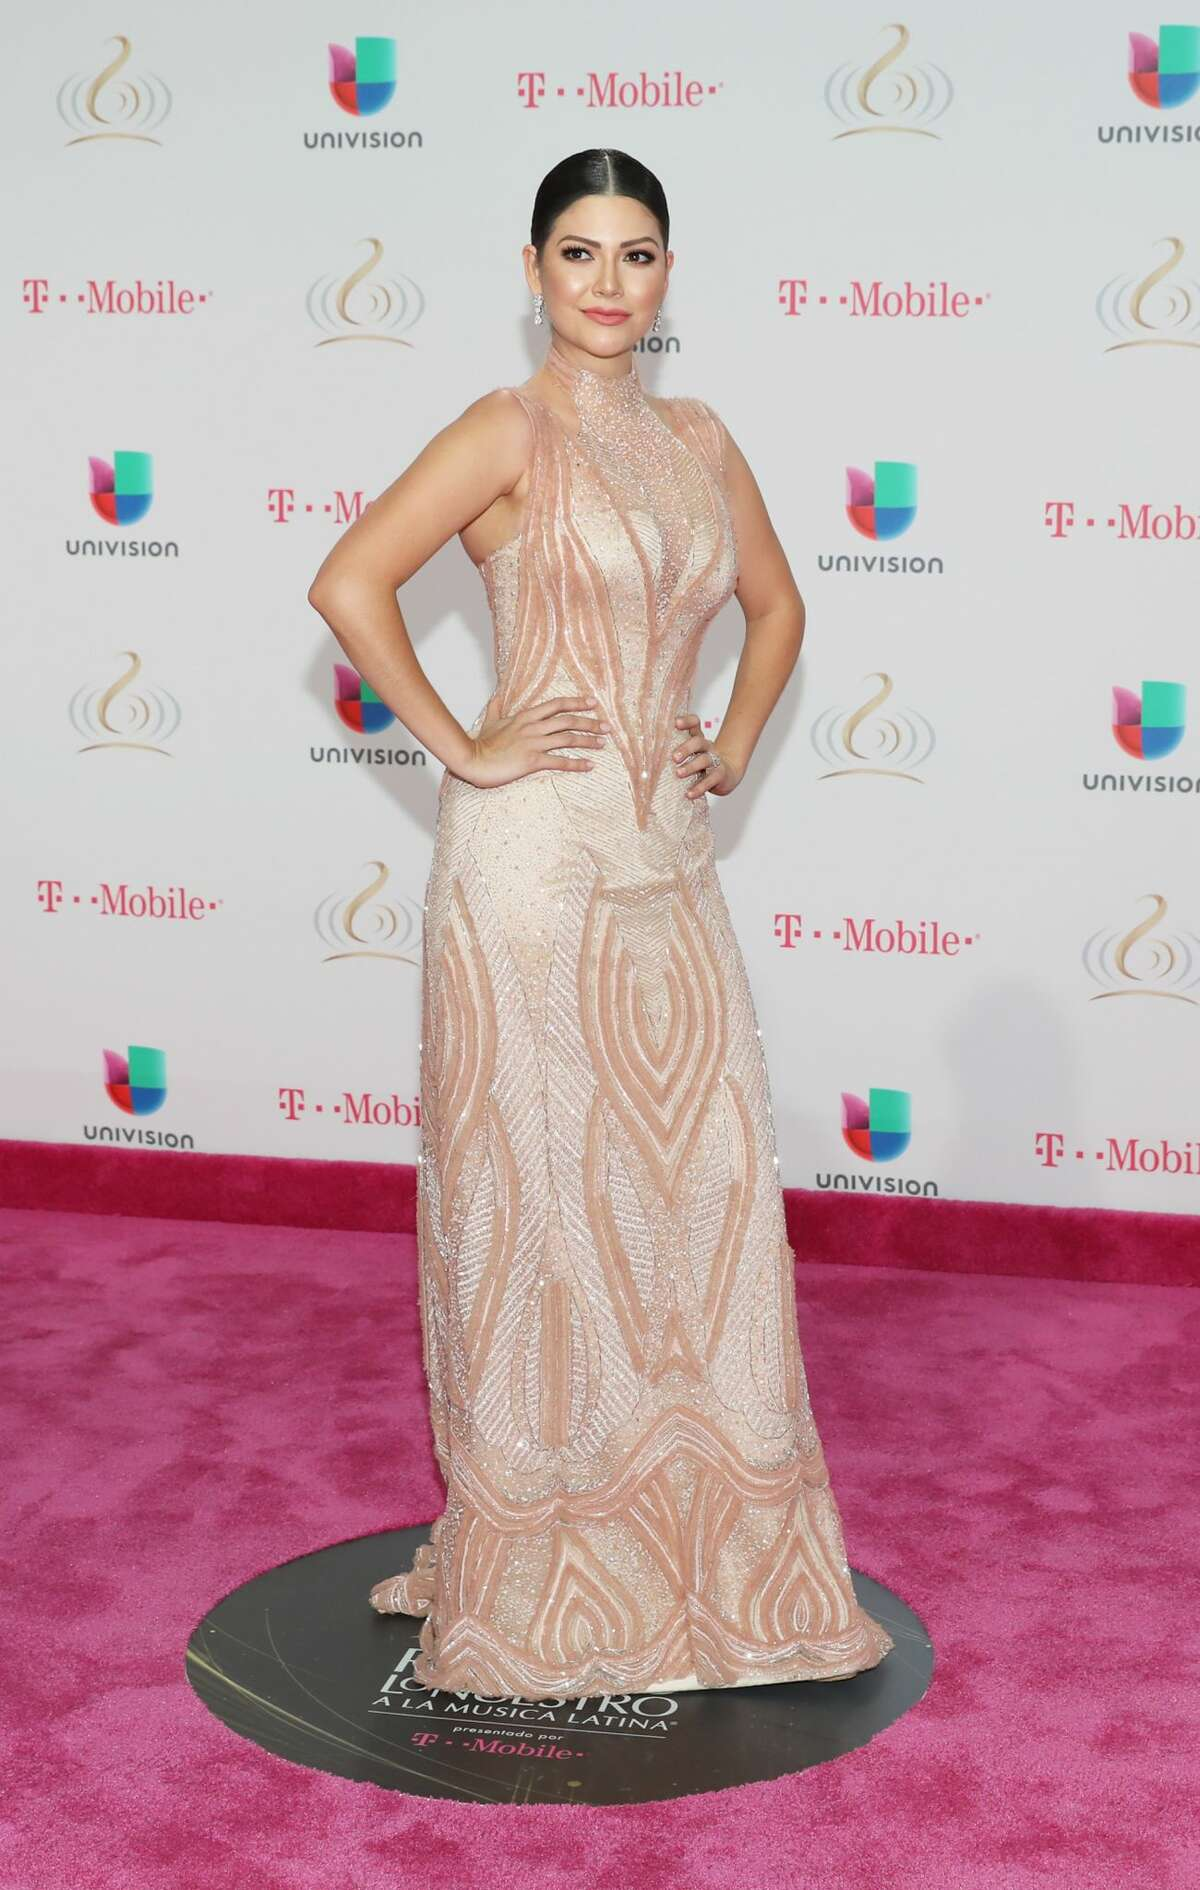 Best:Ana Patricia Gamez wears a gown in a beautiful blush color withgorgeousbeading but...doesn't the design on the front remind of you something that can not be mentioned? Keep clicking to see the best and worst looks of the 29th Edition of the Lo Nuestro Awards presented by Univision.